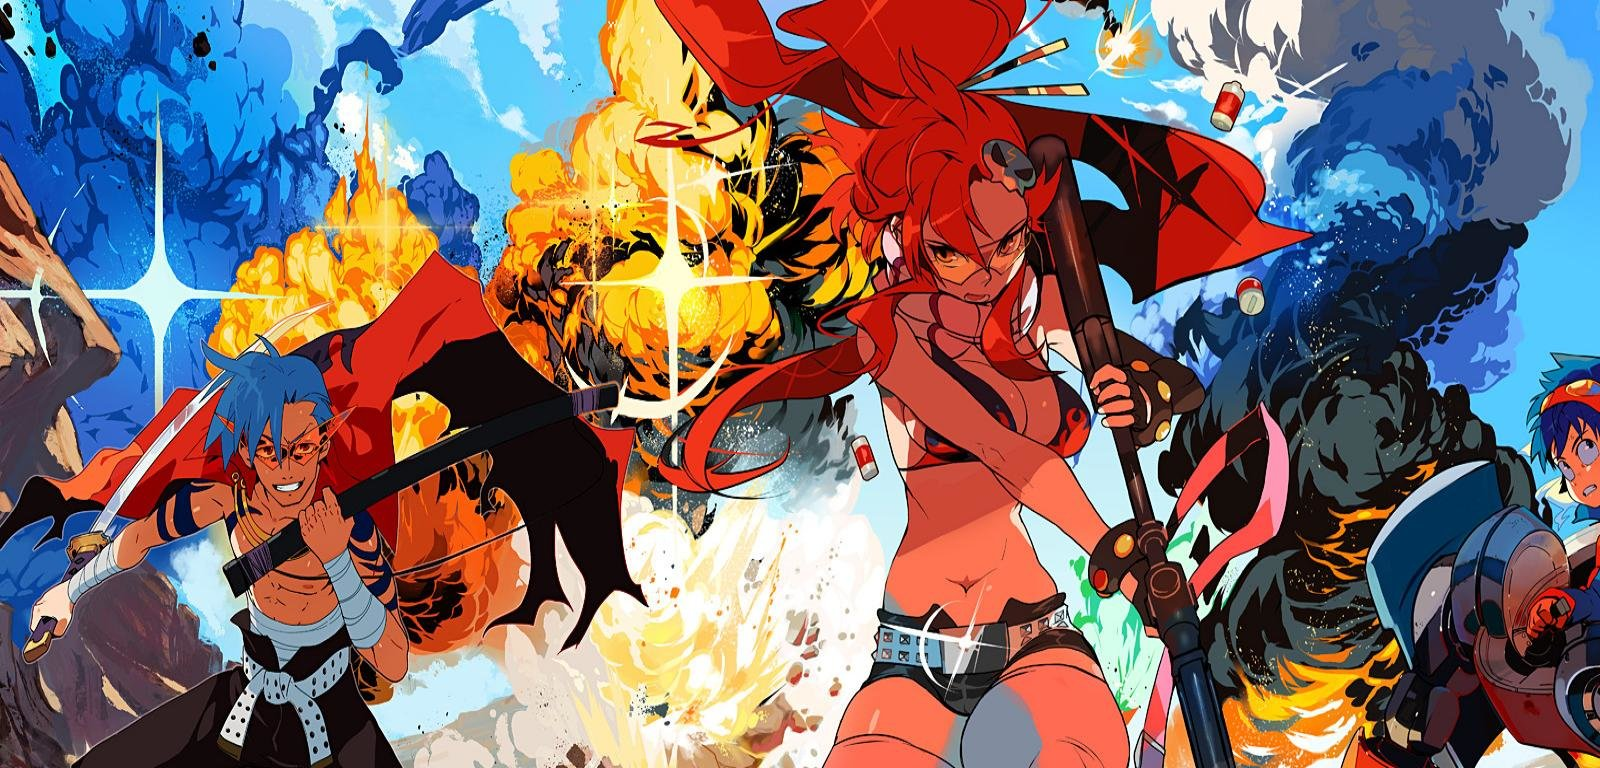 Yoko littner wallpapers hd for desktop backgrounds - Gurren lagann wallpaper ...